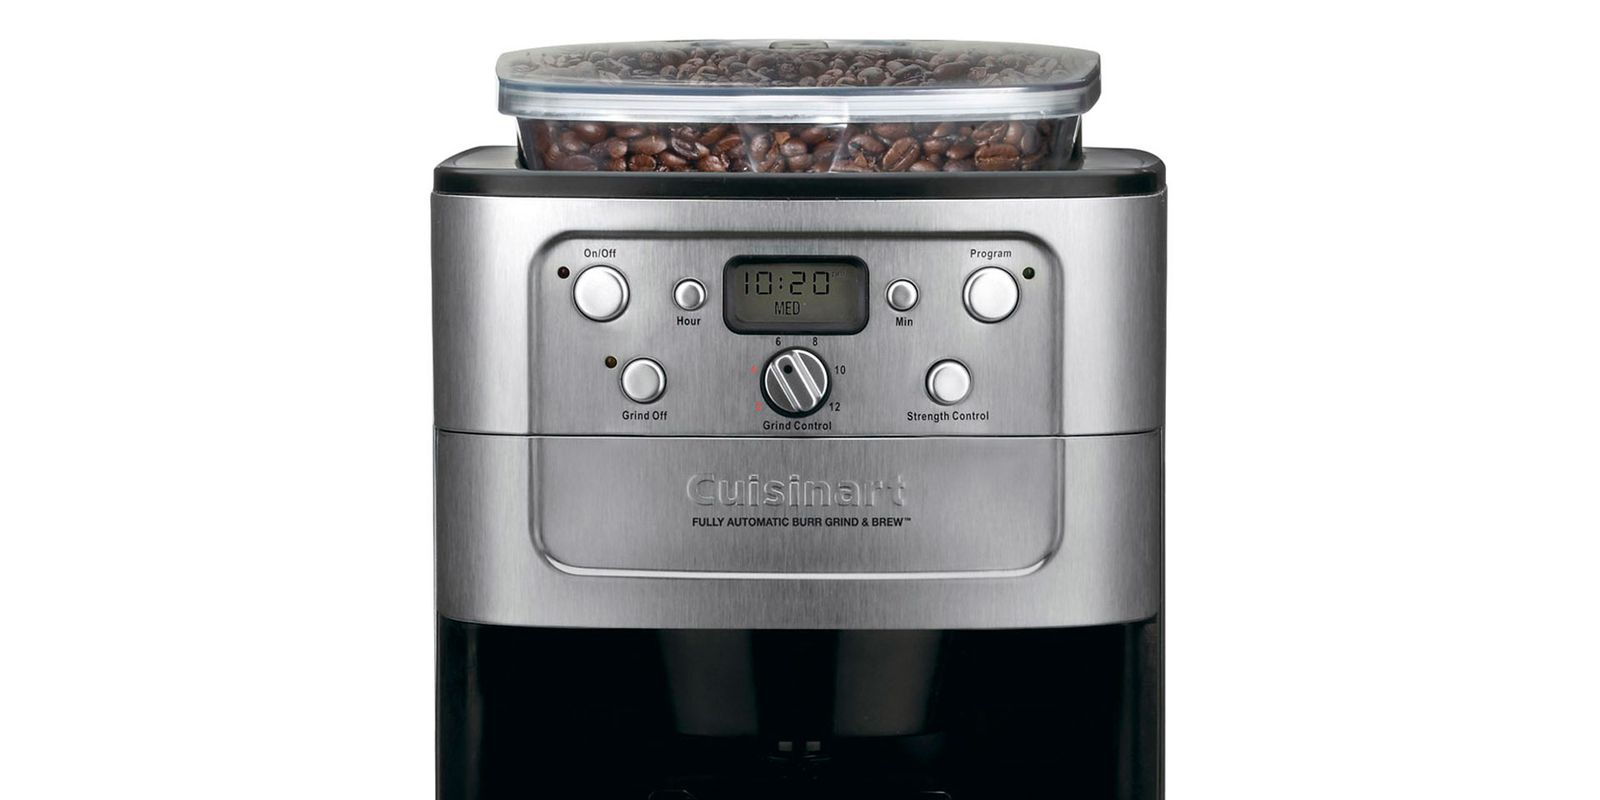 Cuisinart Burr Grind & Brew Automatic Coffeemaker #DGB-900BC Review